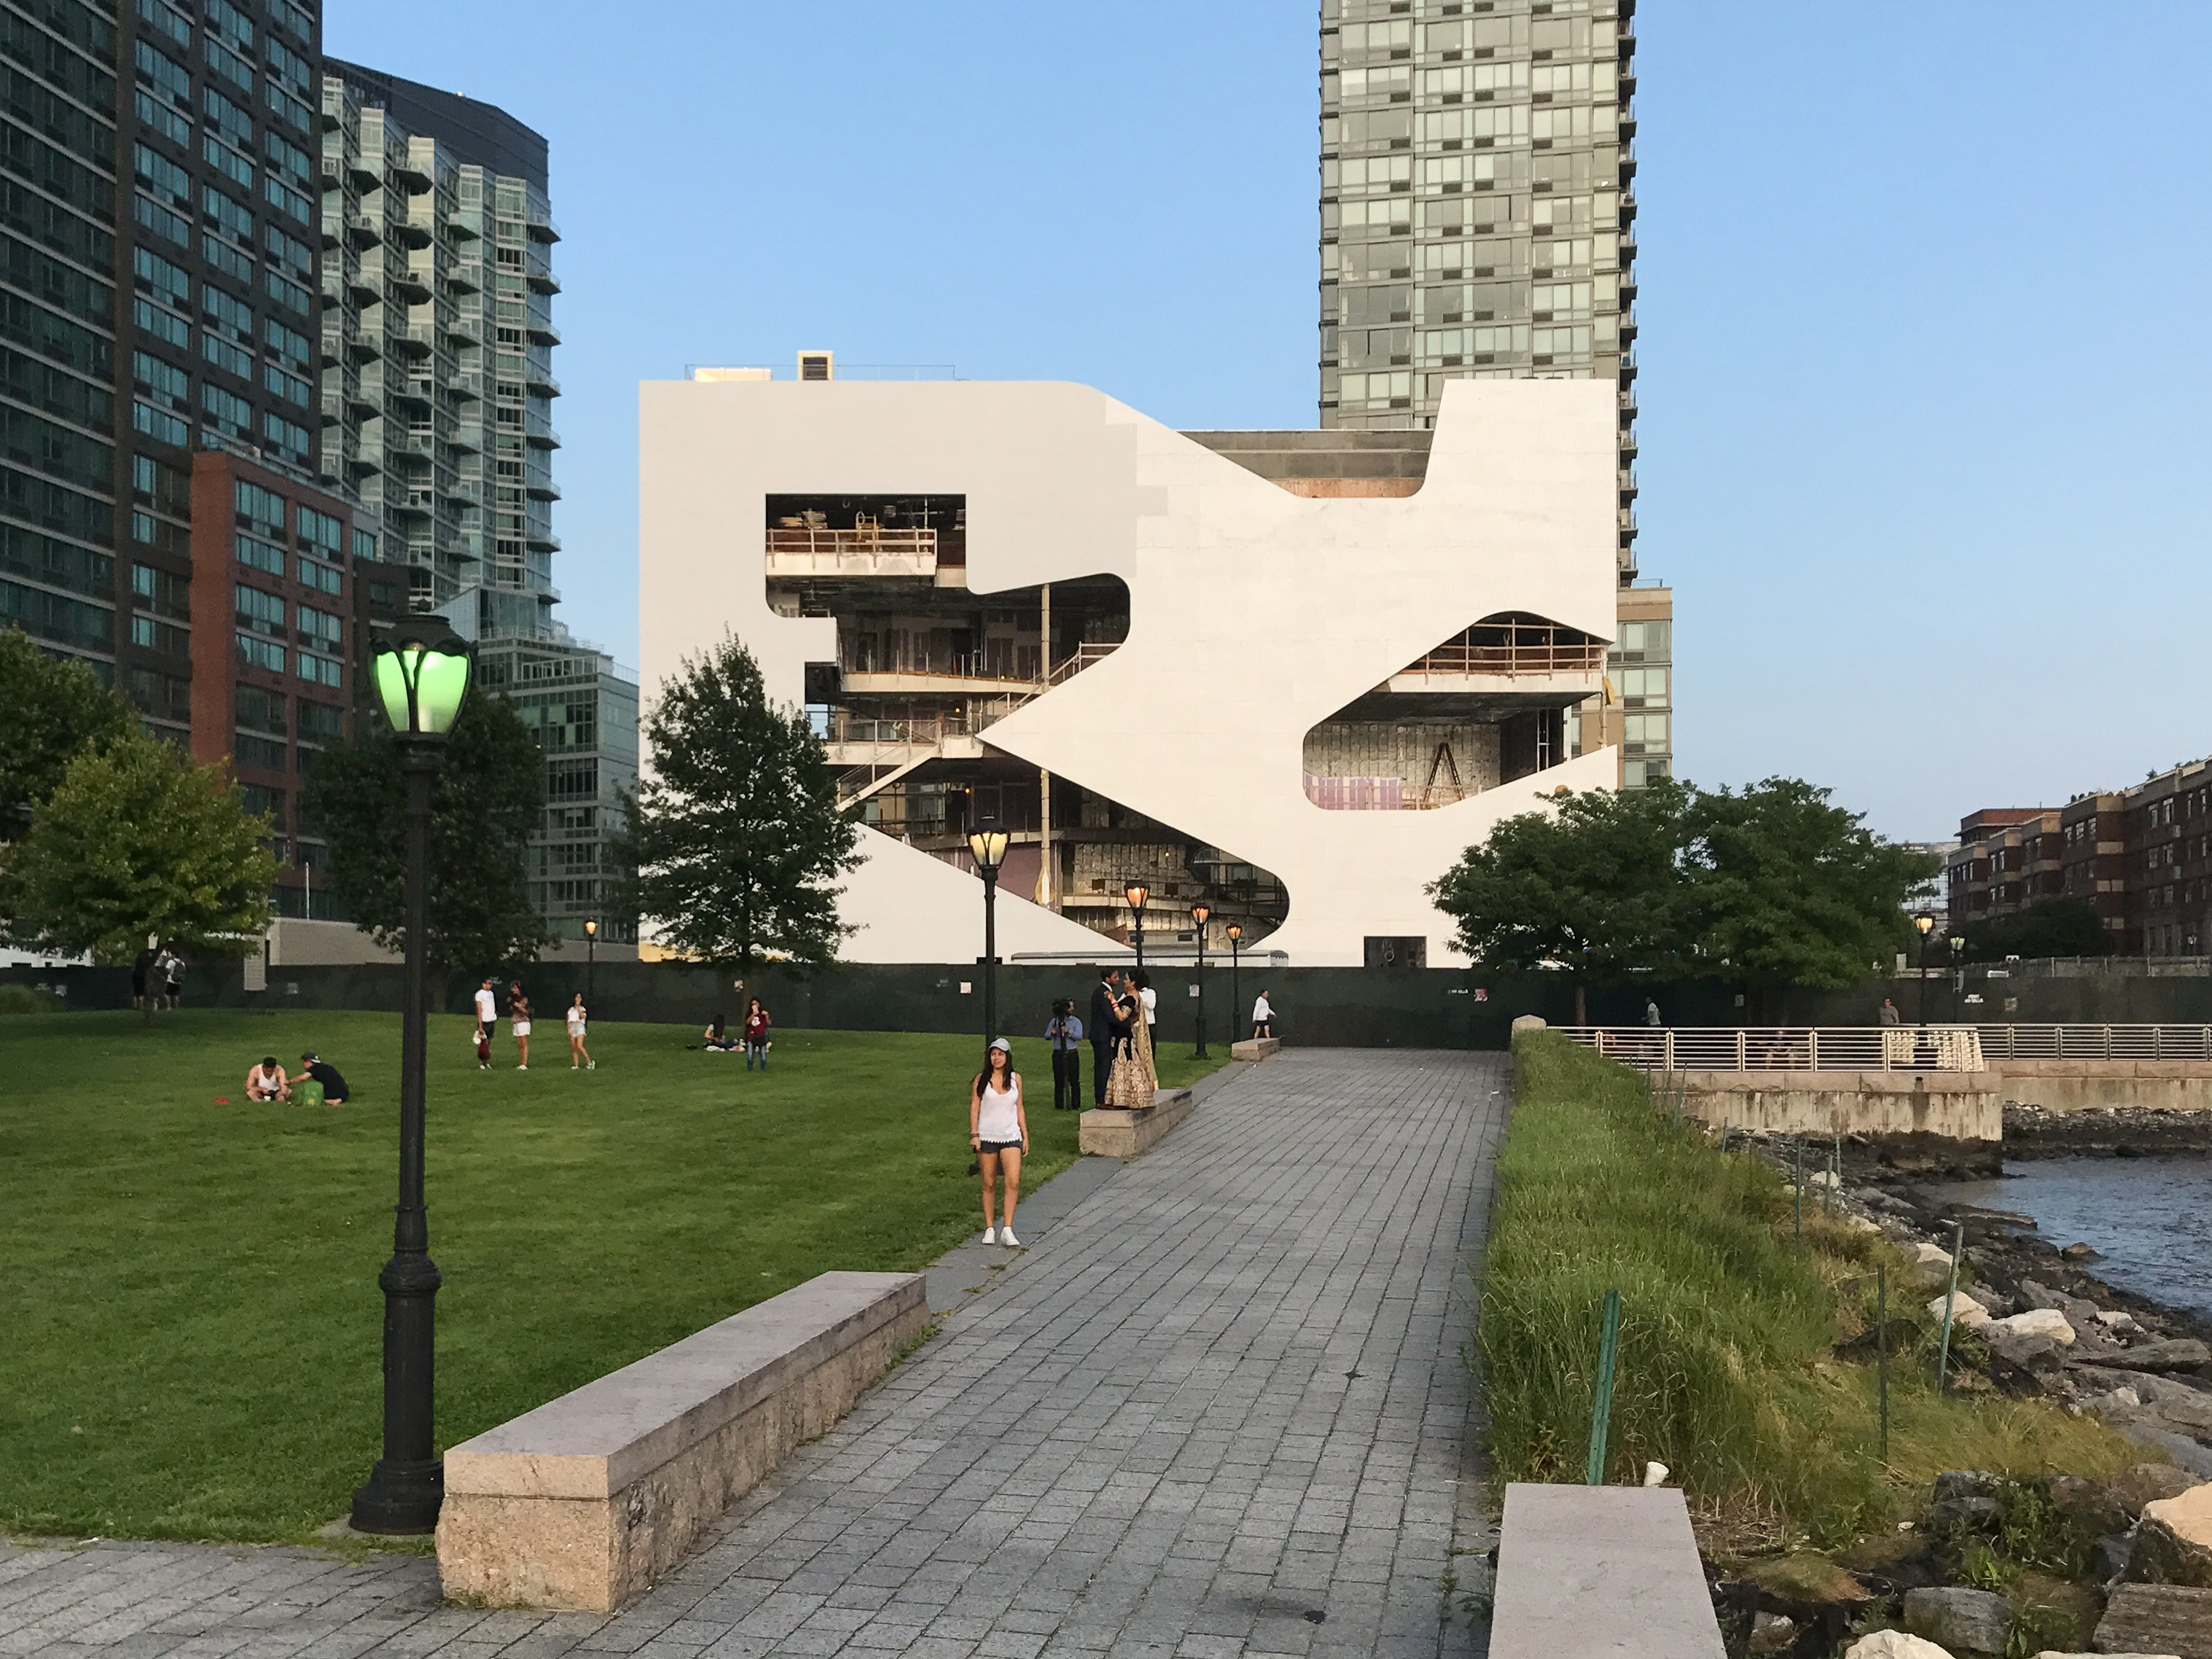 Hunters Point Community Library by Steven Holl in Long Island City/Queens. Copyright: Bettina Johae / aplusnyc.net.